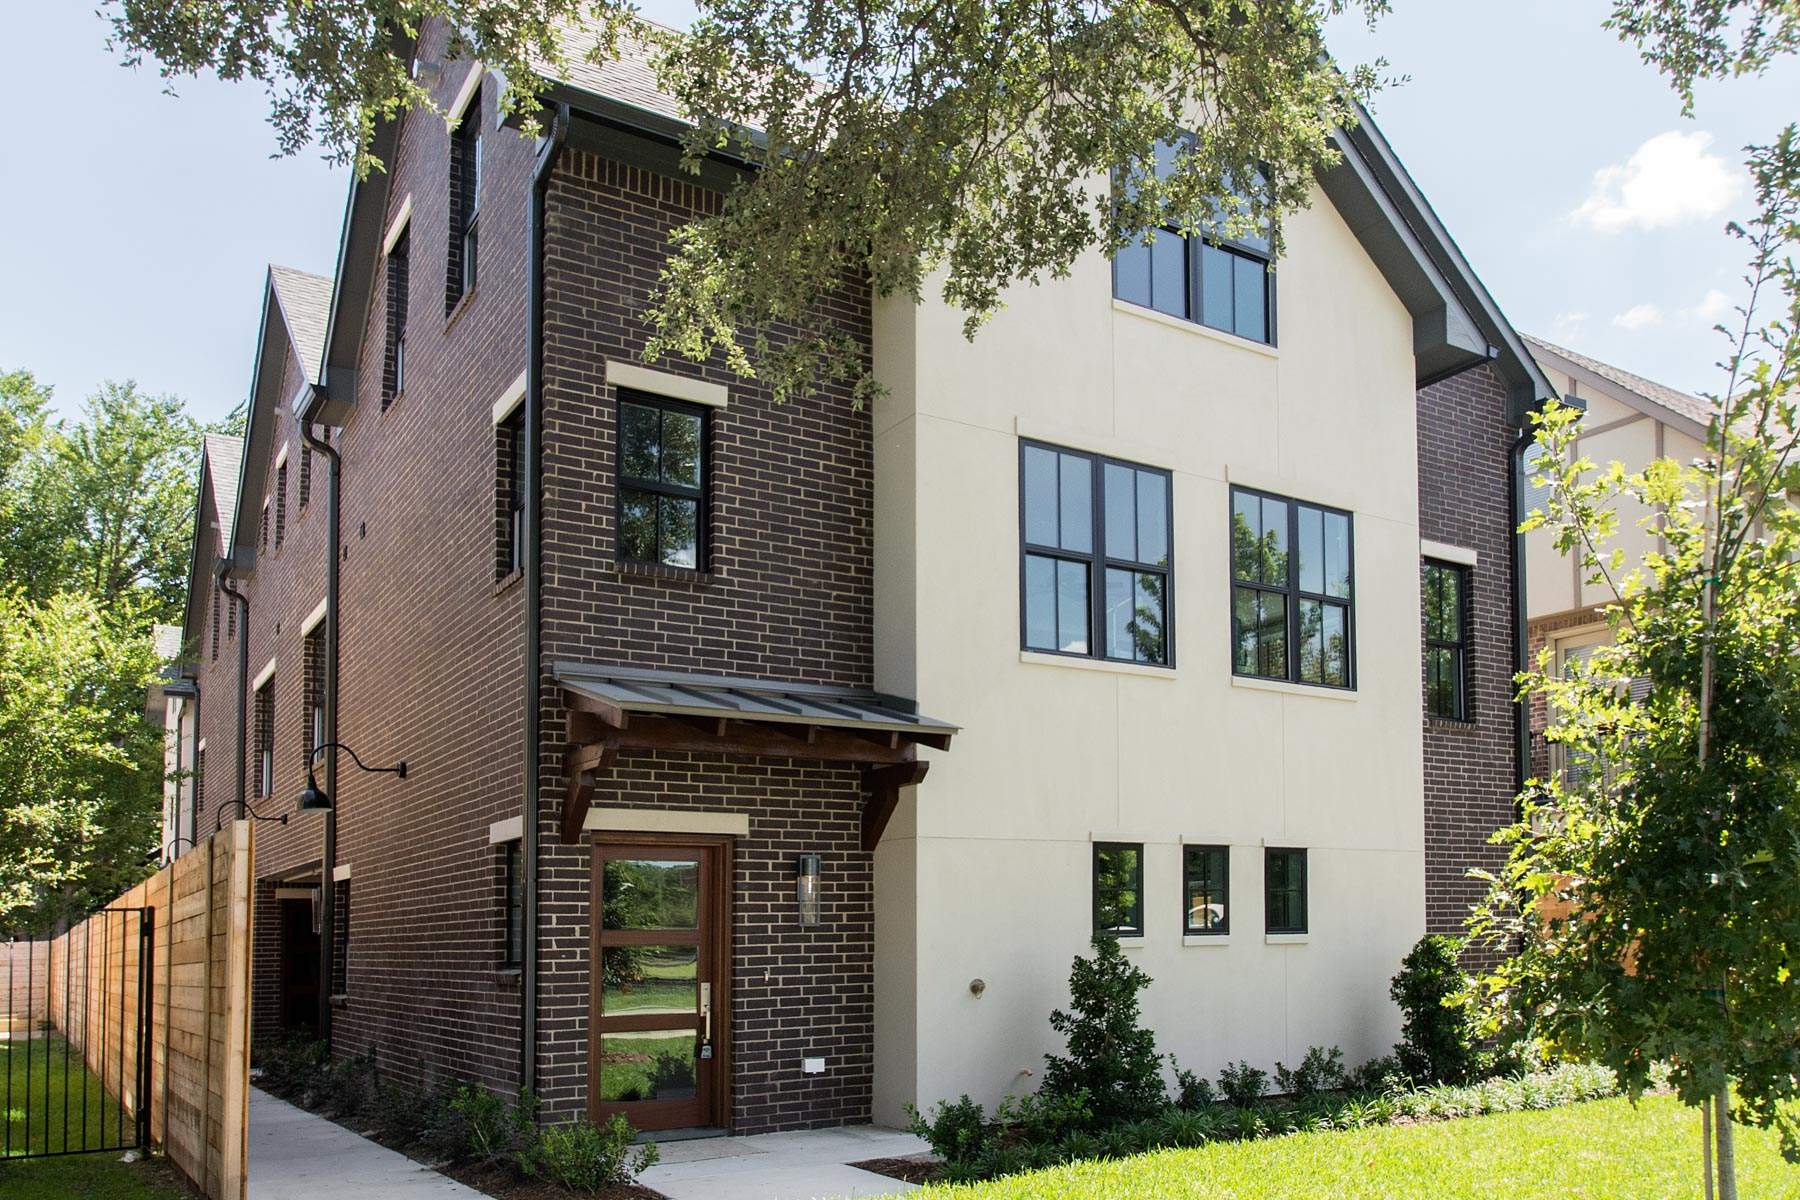 Moradia para Venda às 3-Story Contemporary New Construction 4121 Grassmere Ln 1 Dallas, Texas, 75205 Estados Unidos